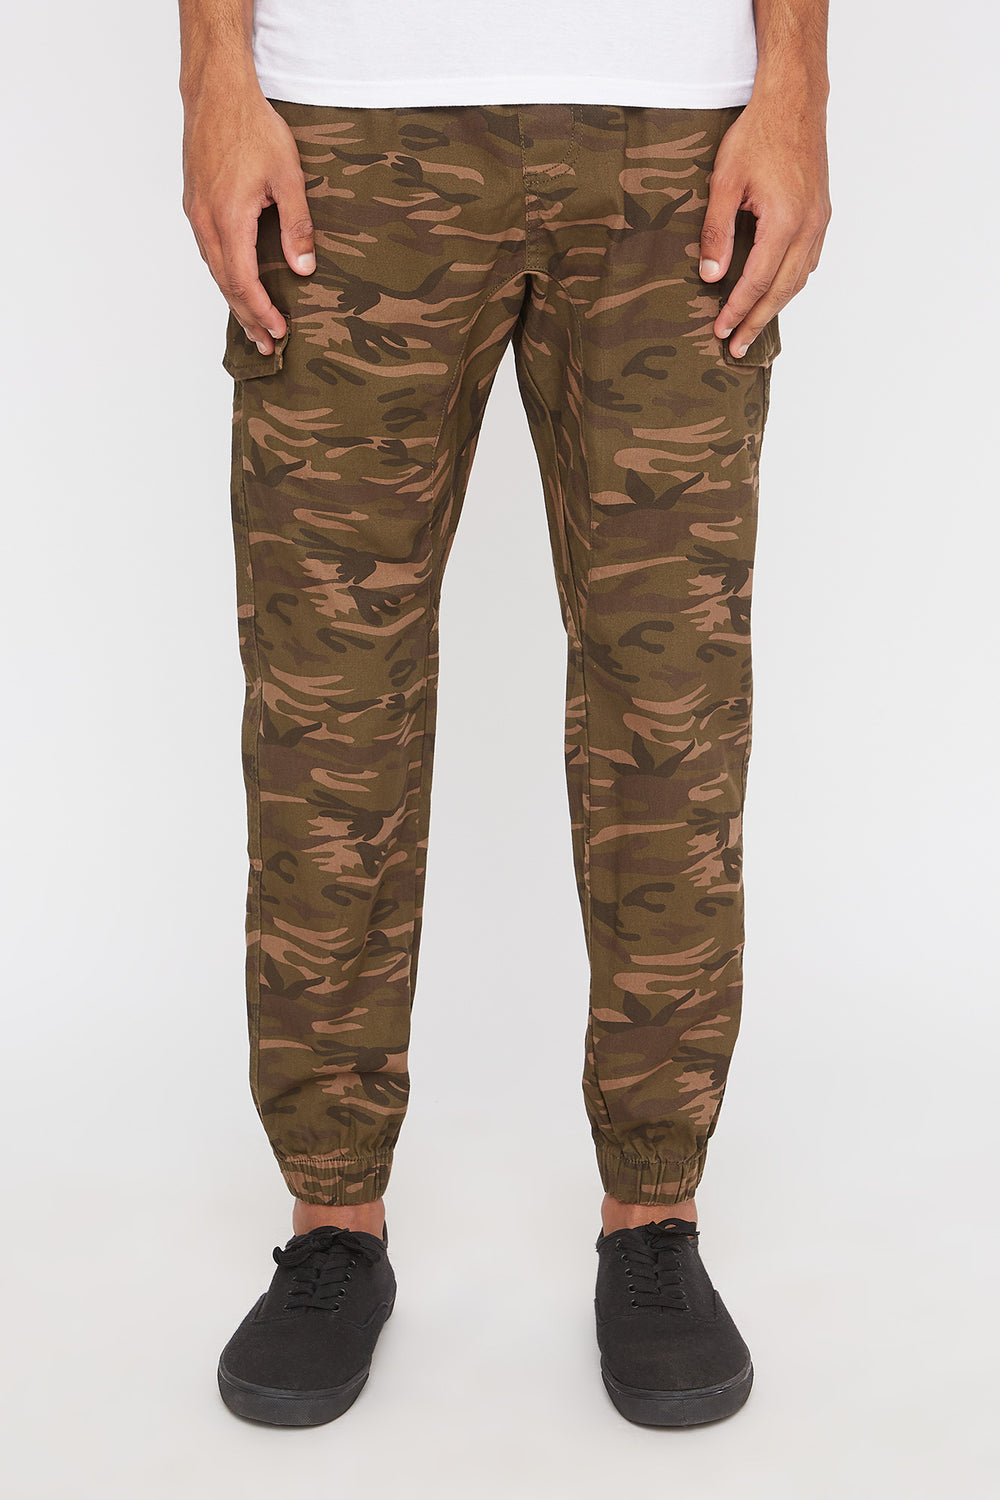 West49 Mens Camo Cargo Jogger Camouflage